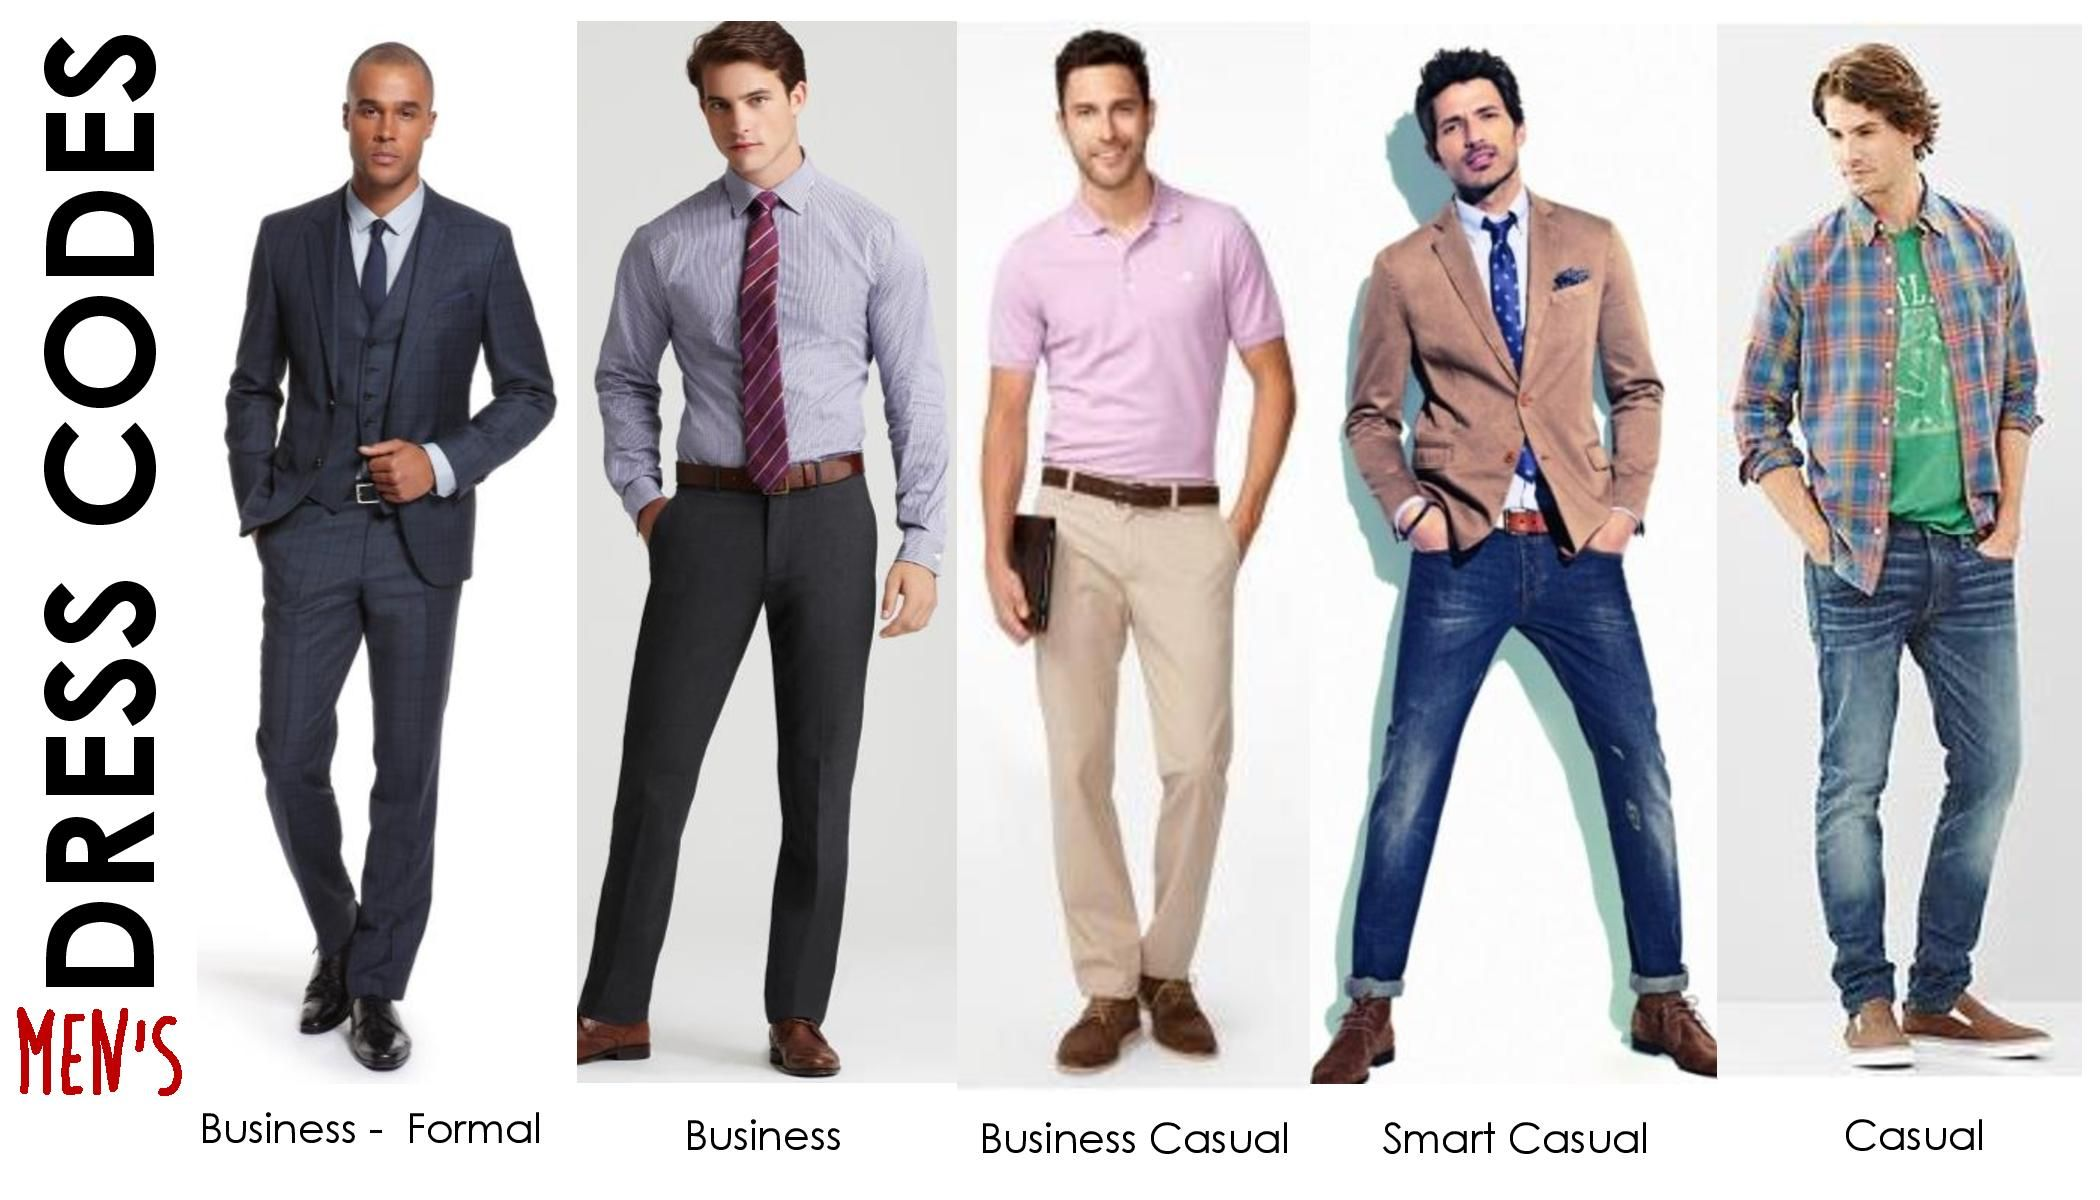 dress code - business formal - Szukaj w Google | Rzeczy do ...